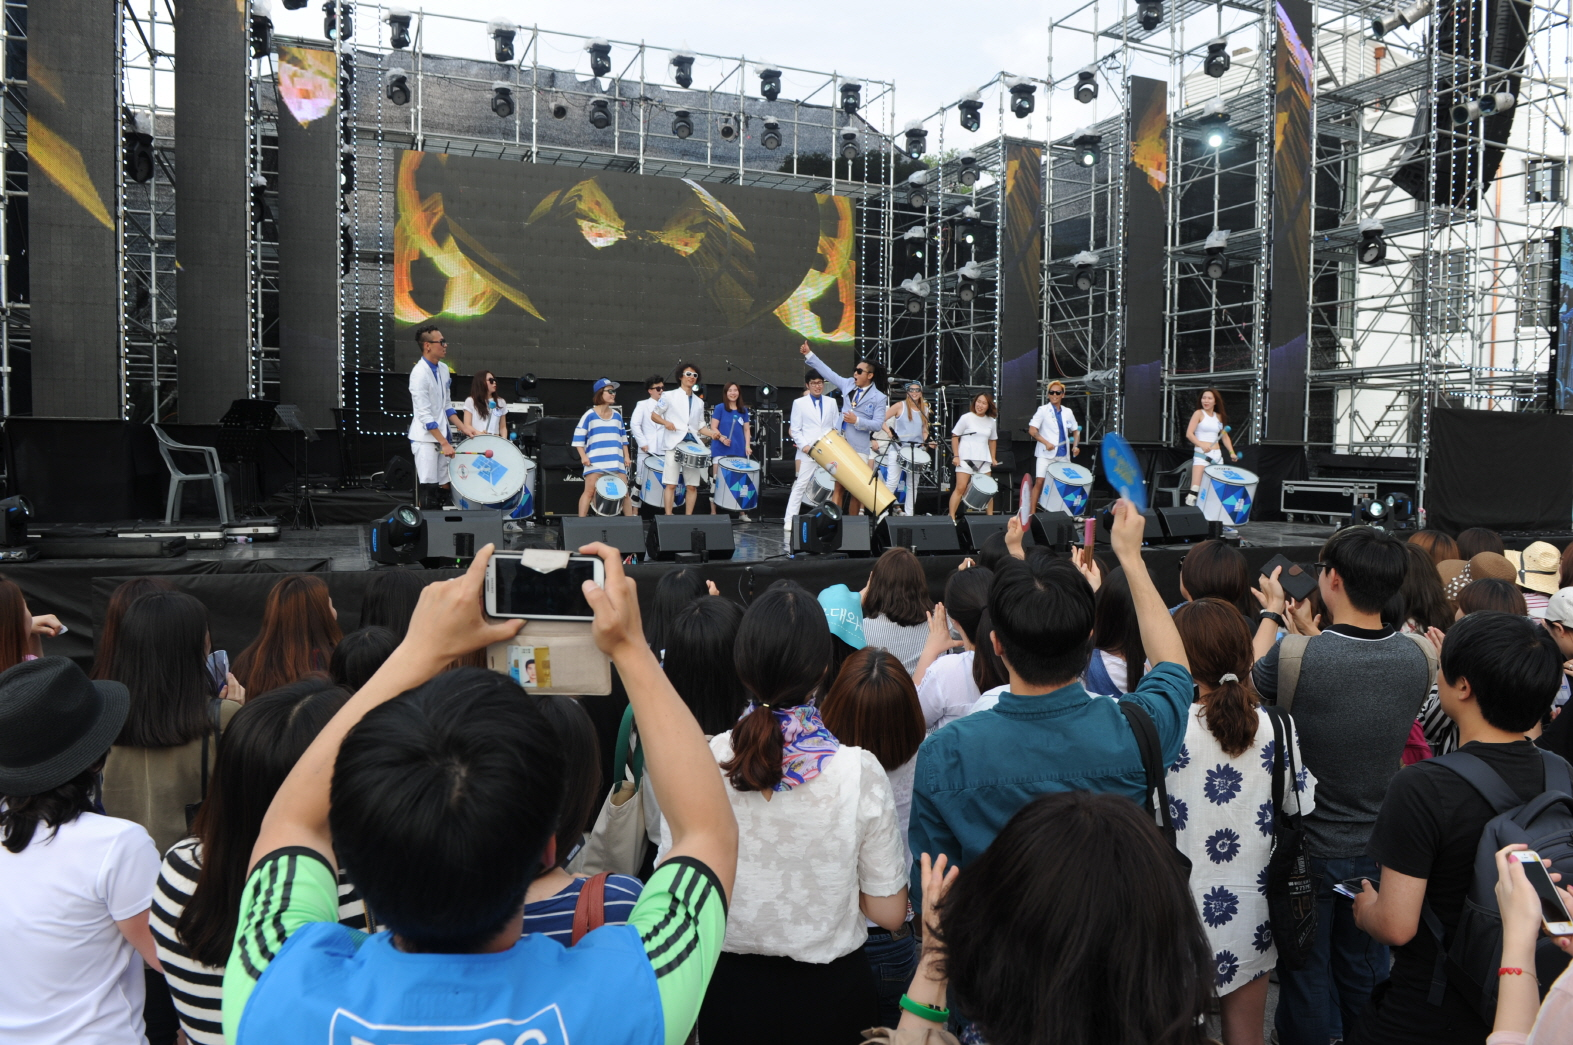 Youth enjoy the Youth Nanjang Festival at Democracy Square in the Asia Culture Complex.